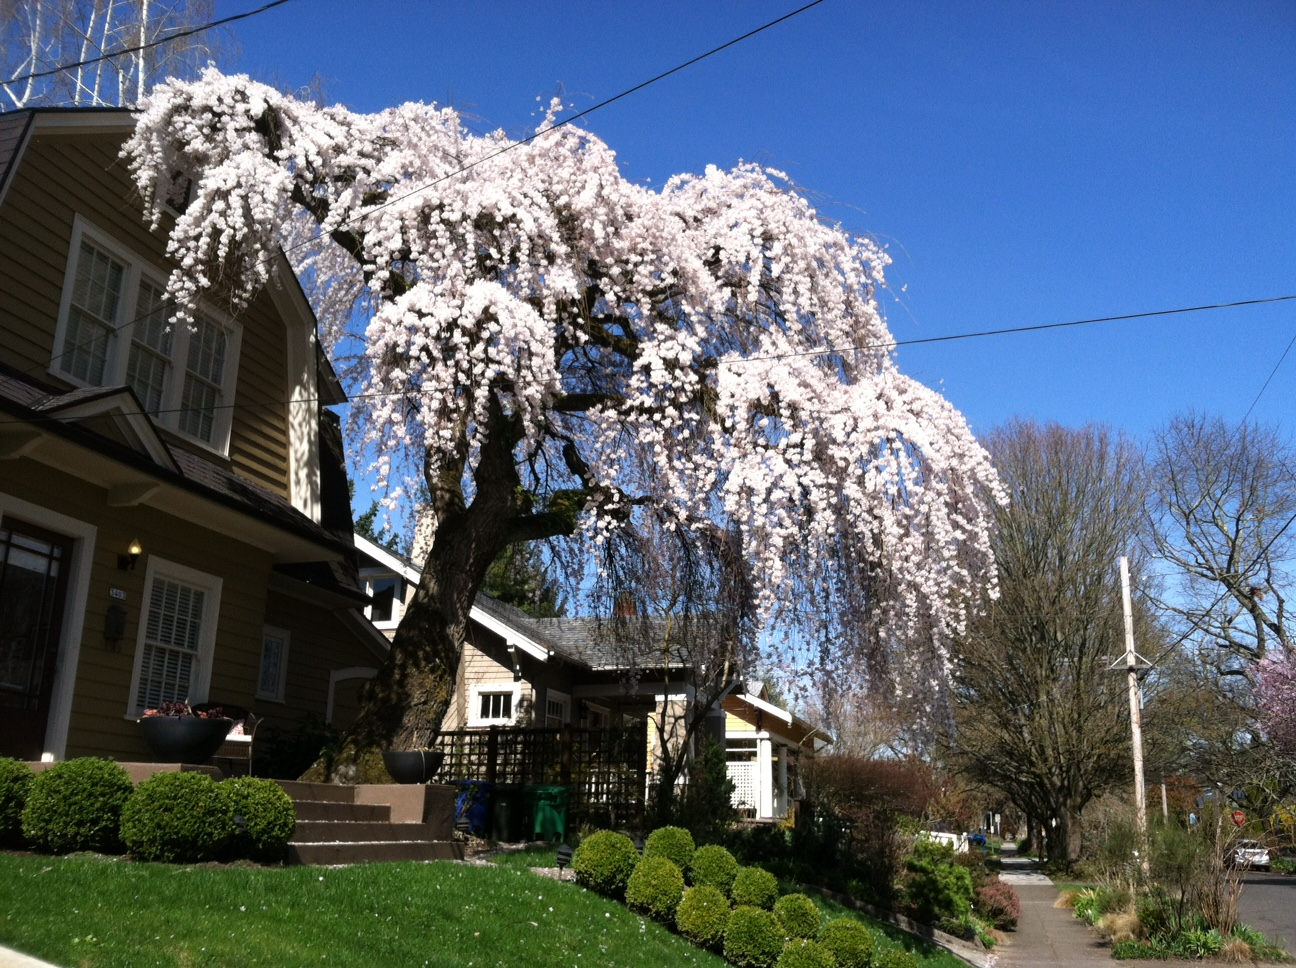 Weeping Cherry tree - heritage tree at Ne 18th - Photo by barb christopher